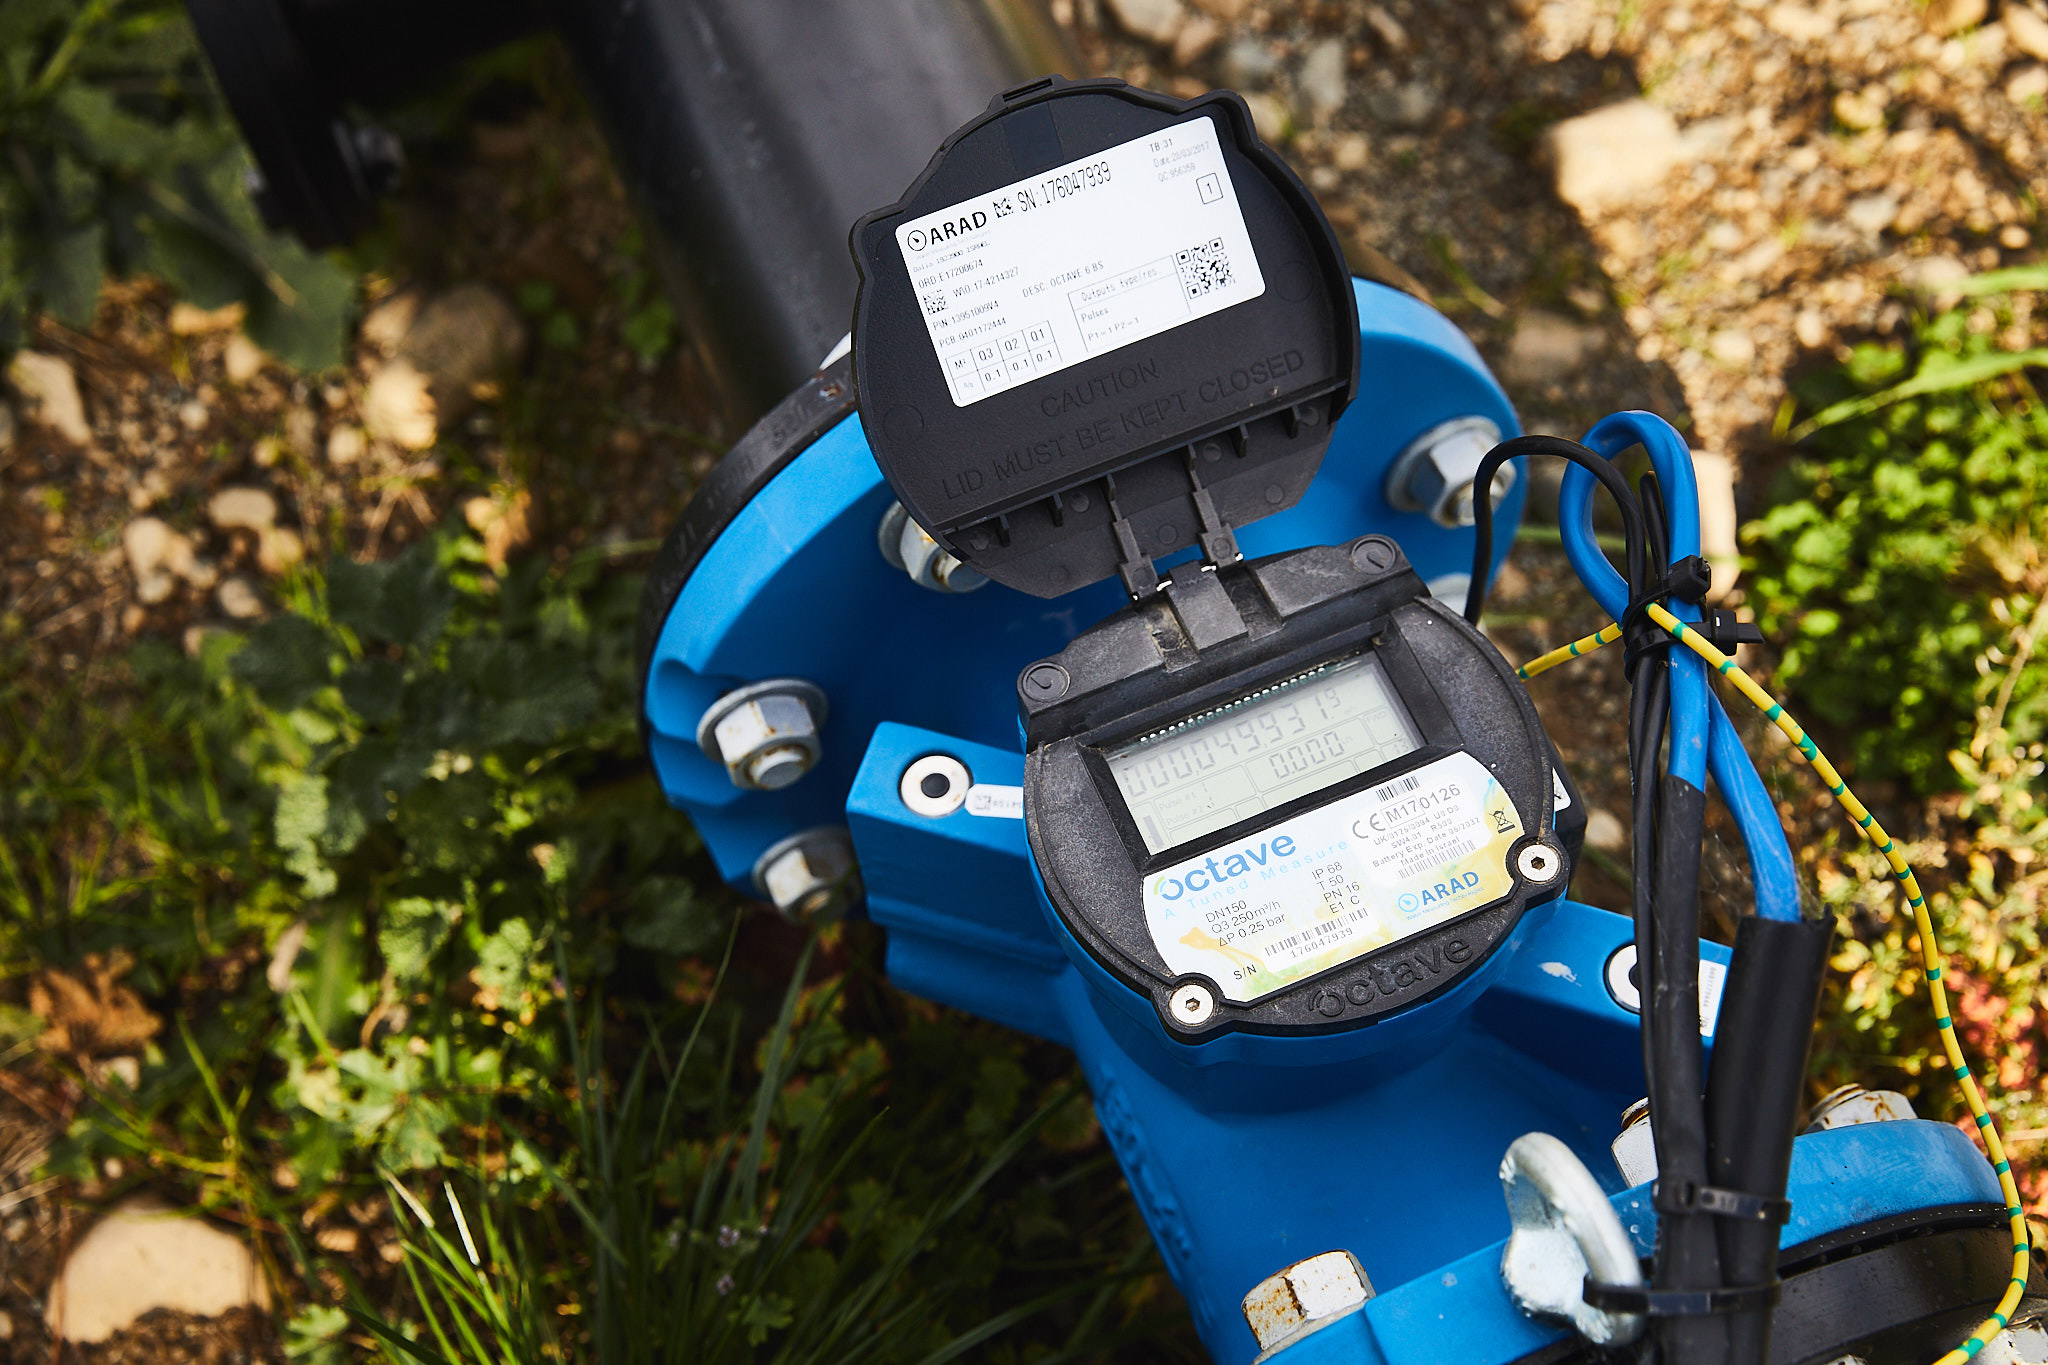 Irrigation - • Vineyard Irrigation system design, install, maintenance and auditing• Broadacre irrigation machinery• Expertise in all types of automatic filters• Sales and service of huge range of irrigation equipment at cost effective prices• RadioLink irrigation monitoring & control